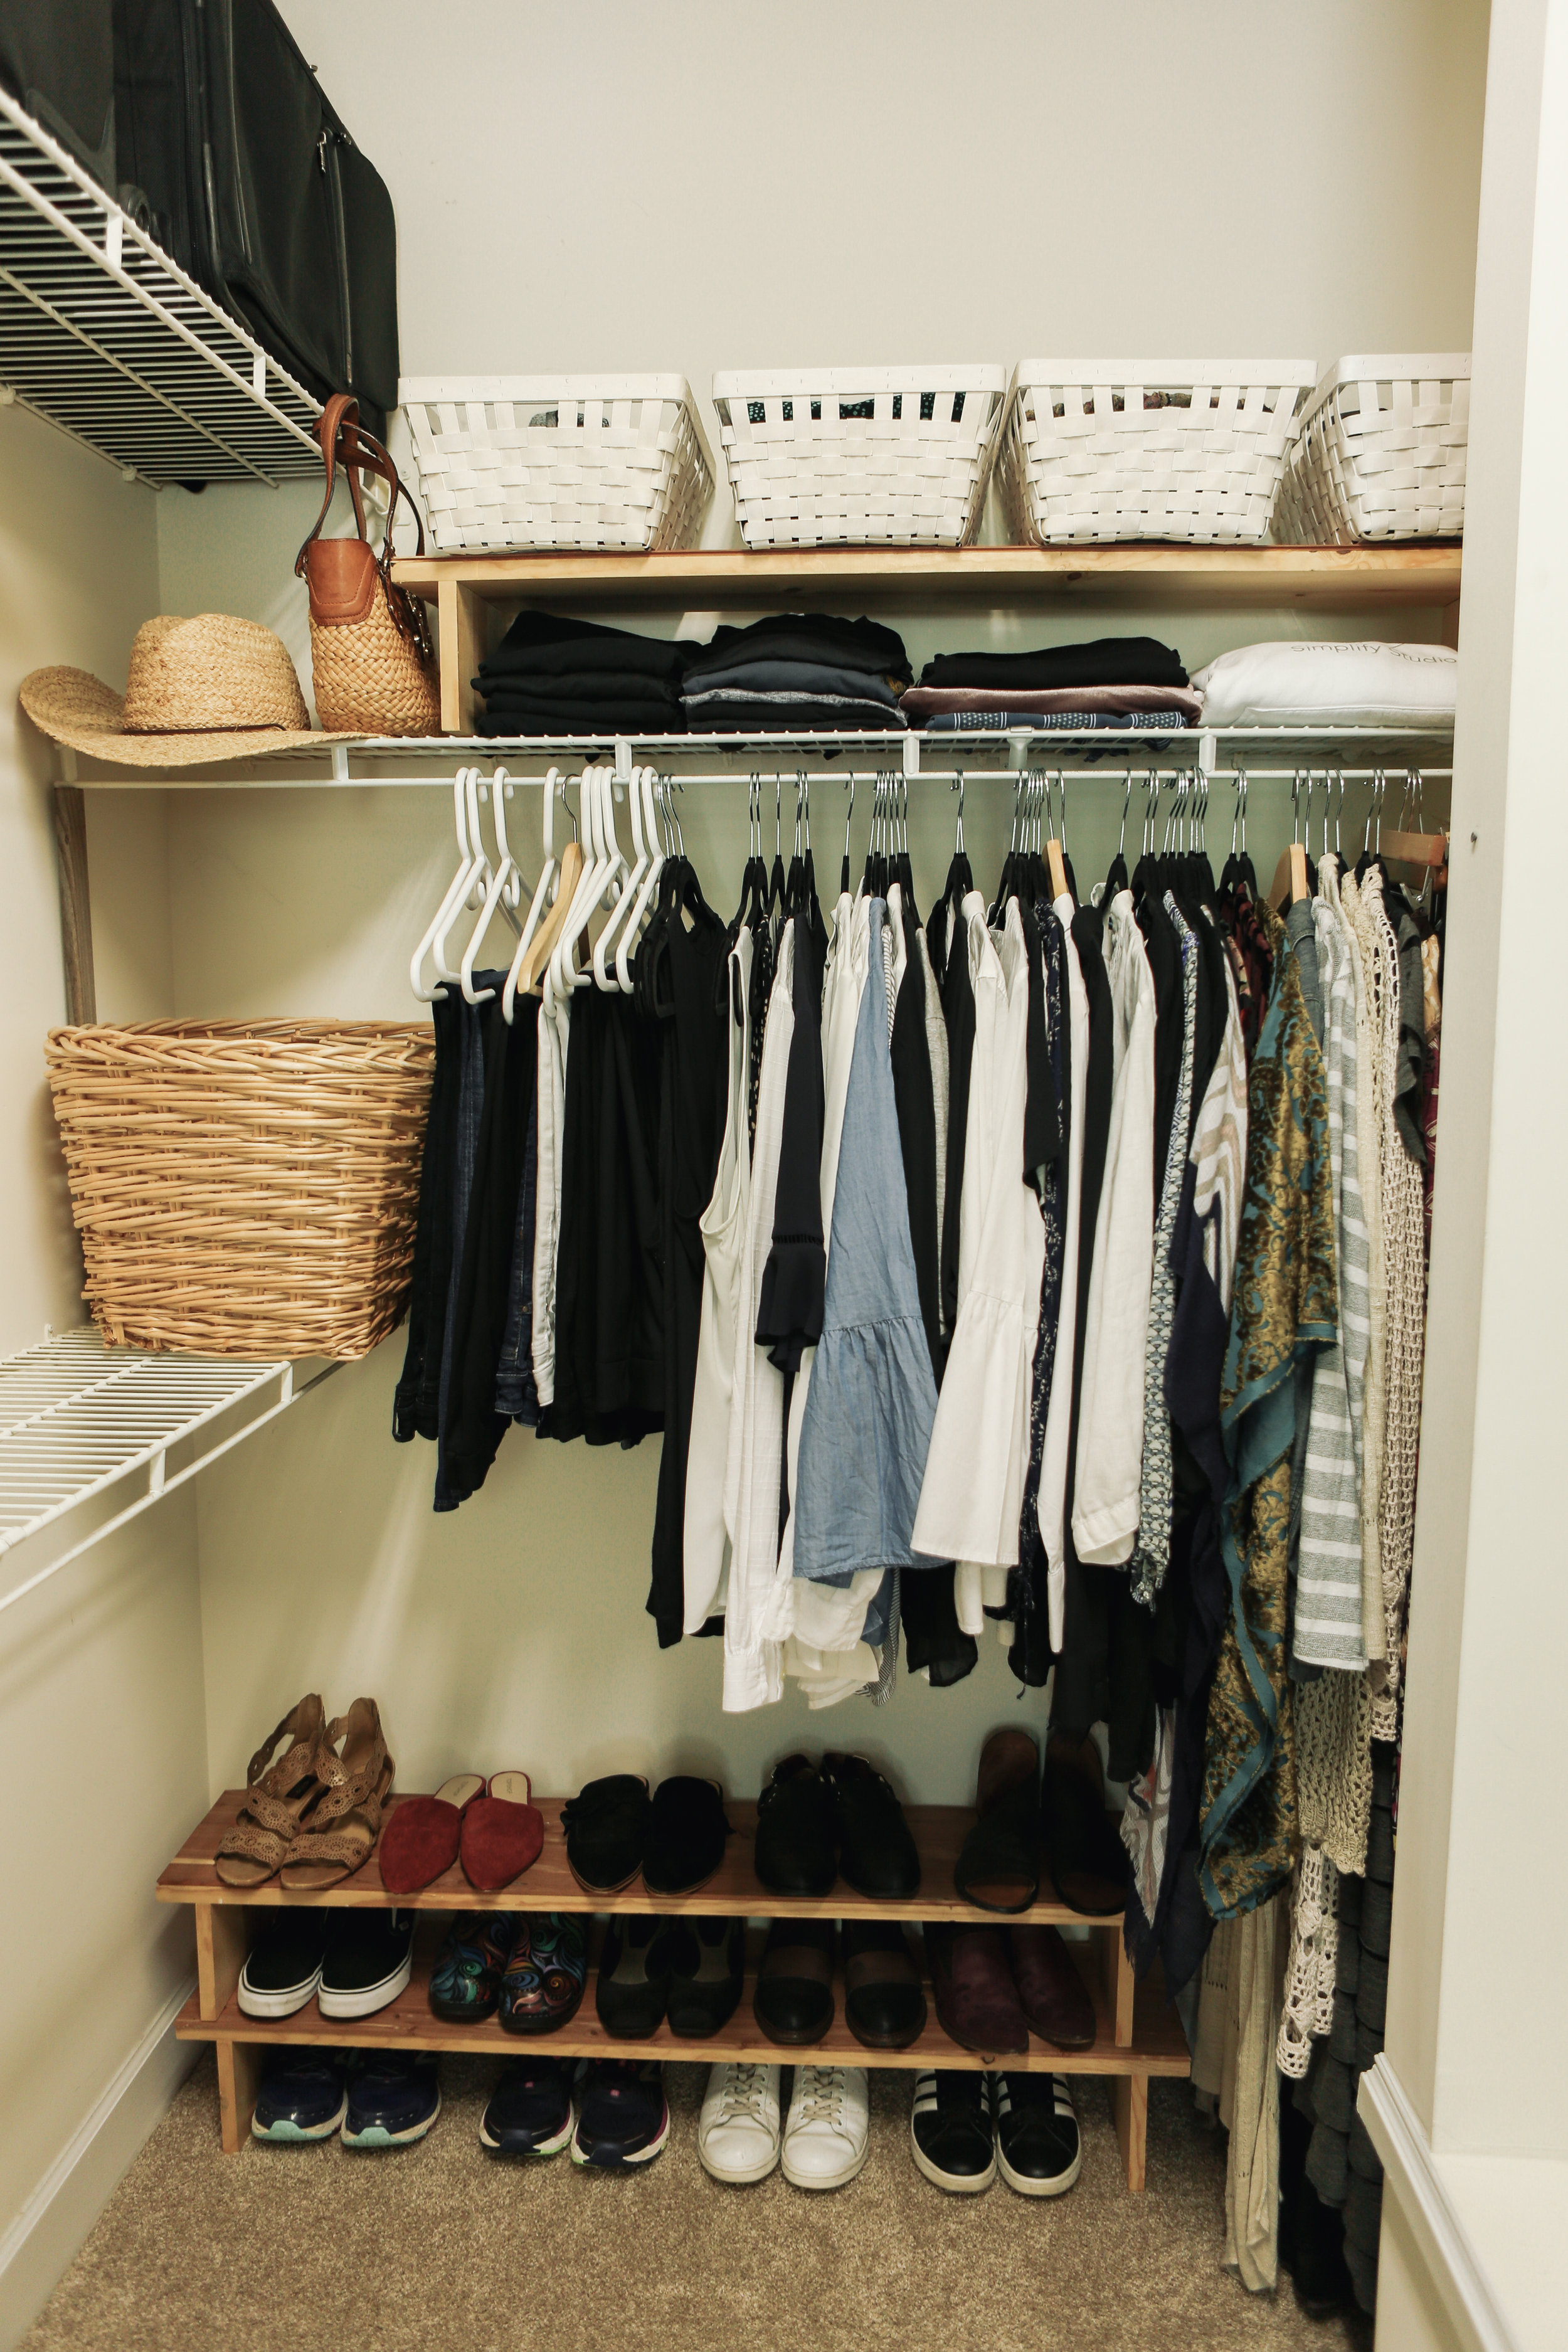 Step 2 - Next arrange like with like. Hang all pants together and group jeans together, then lightweight pants, etc. Group blazers, blouses, short sleeve tops, skirts, dresses. Group sandals, summer flats, sneakers, etc.